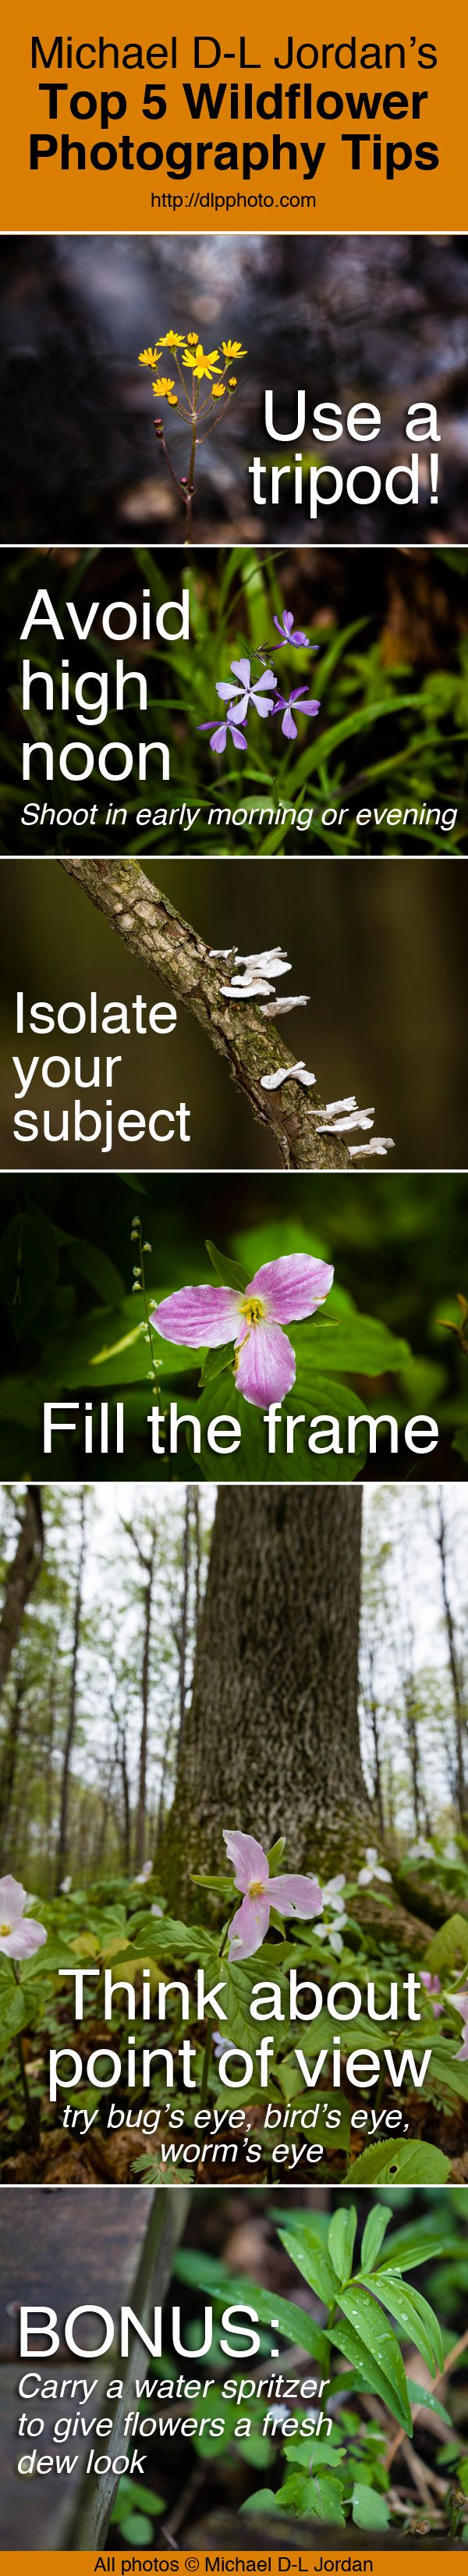 Happy Nature Photography Day! Check out these wildflower photo tips by Michael D-L Jordan. http://dlpphoto.com